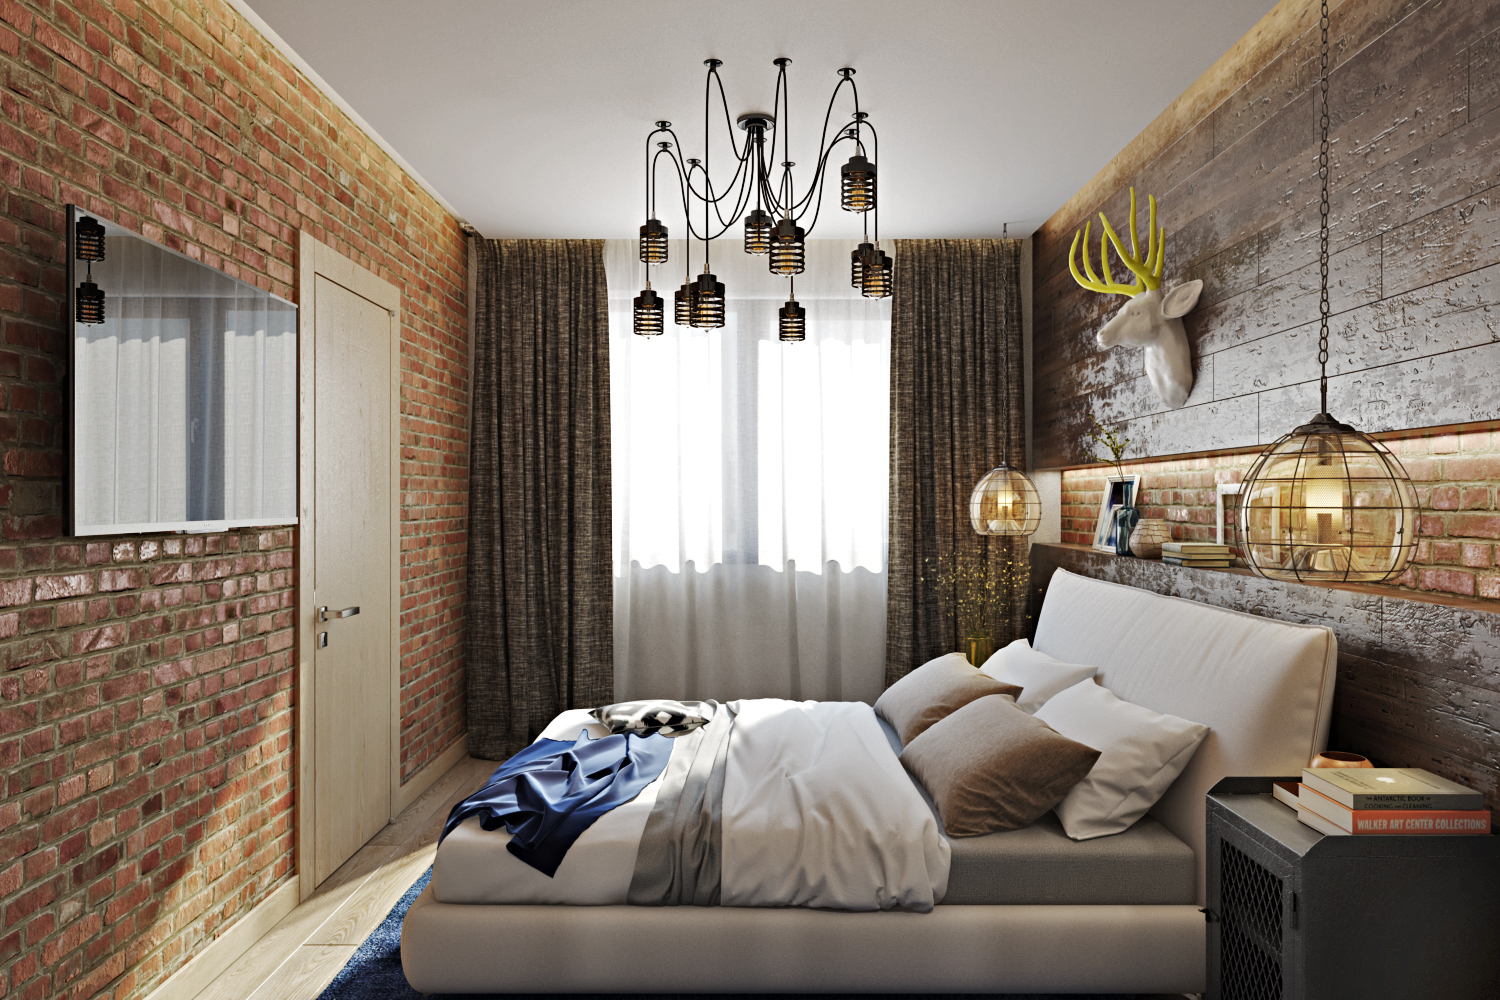 02-Though-the-bedroom-is-small-there-are-a-lot-of-stylish-touches-like-a-brick-wall-or-an-industrial-metal-chandelier